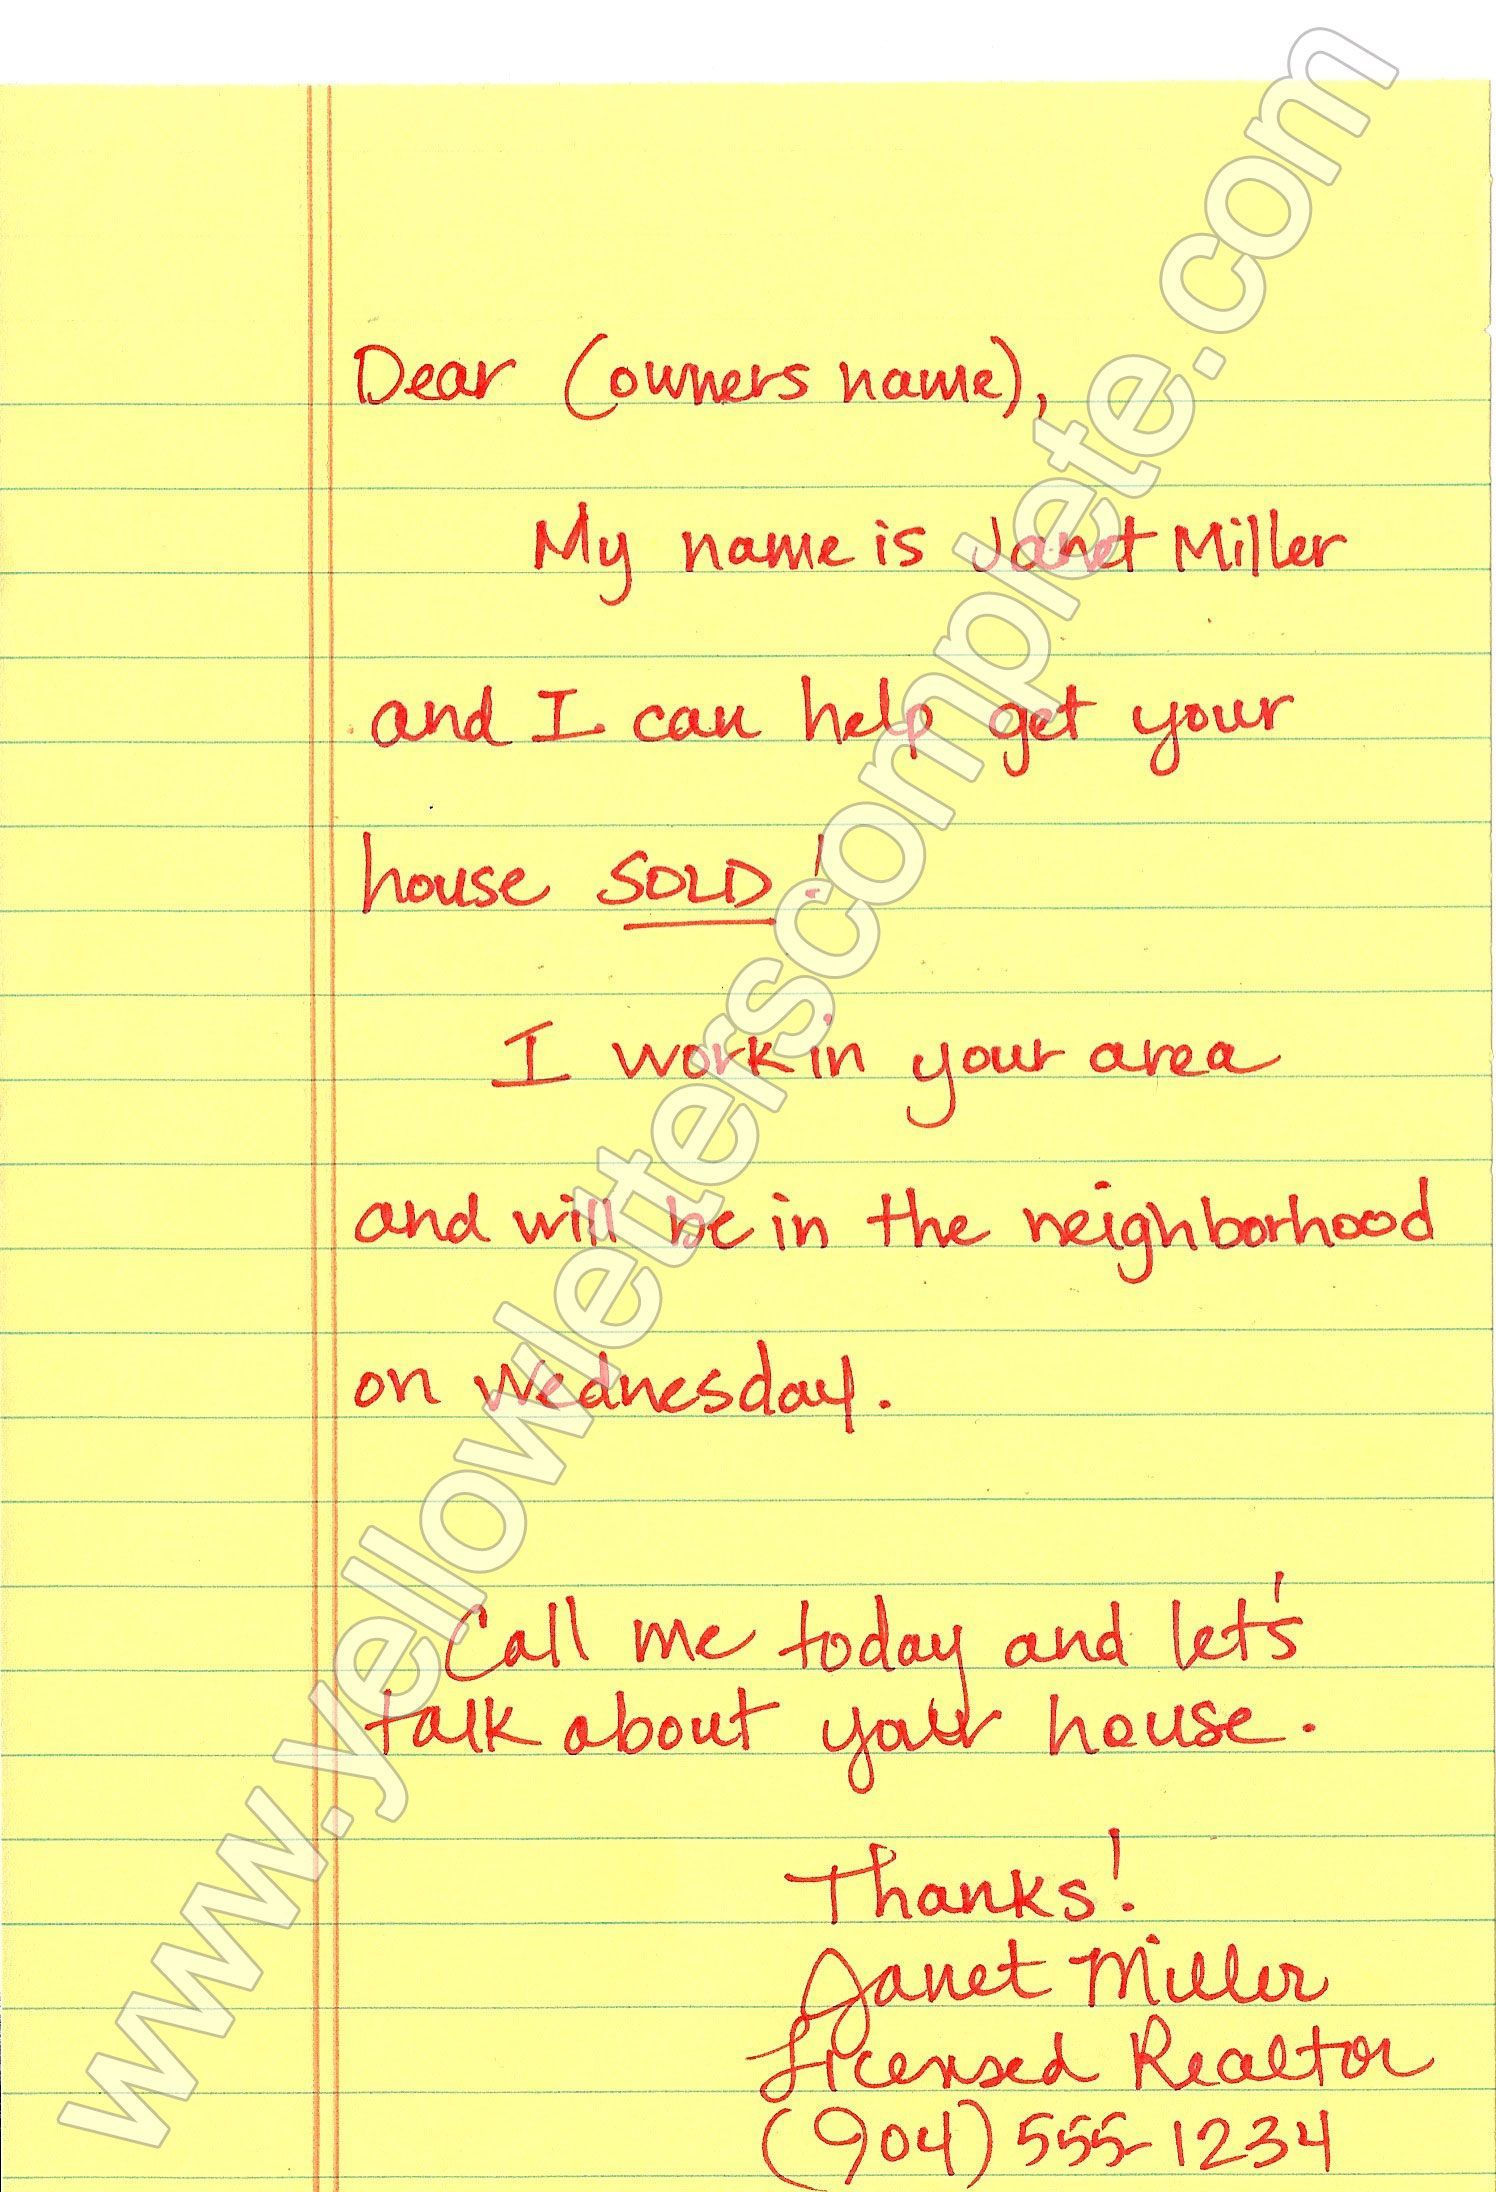 000 Top Real Estate Marketing Letter Template Image  TemplatesFull